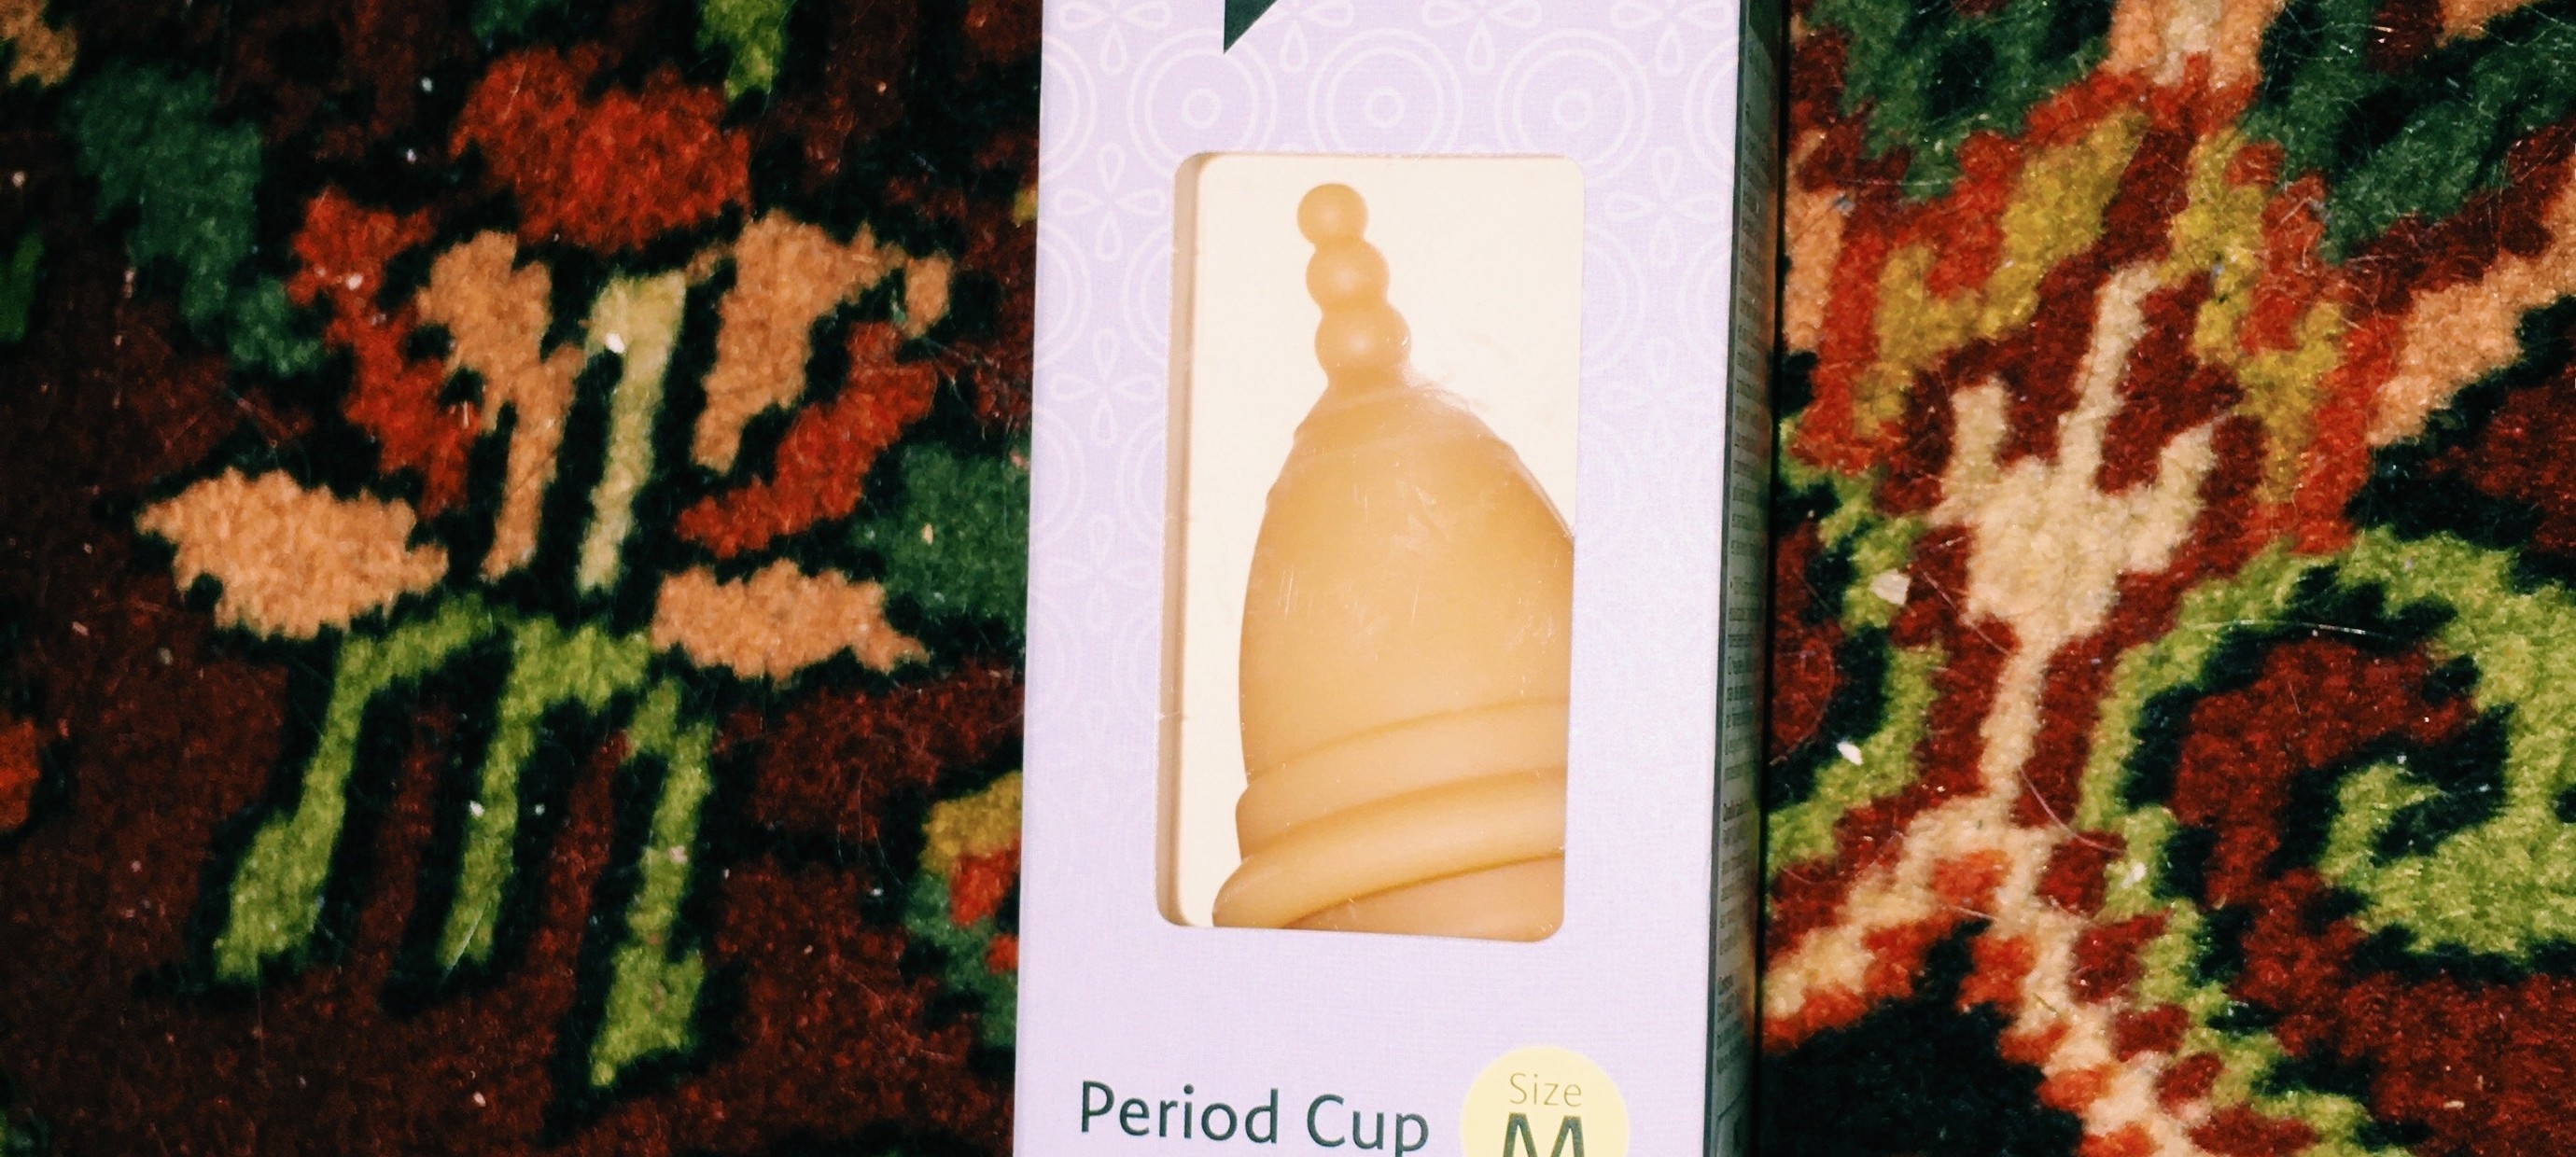 THE MENSTRUAL CUP: WHAT, WHY AND HOW?